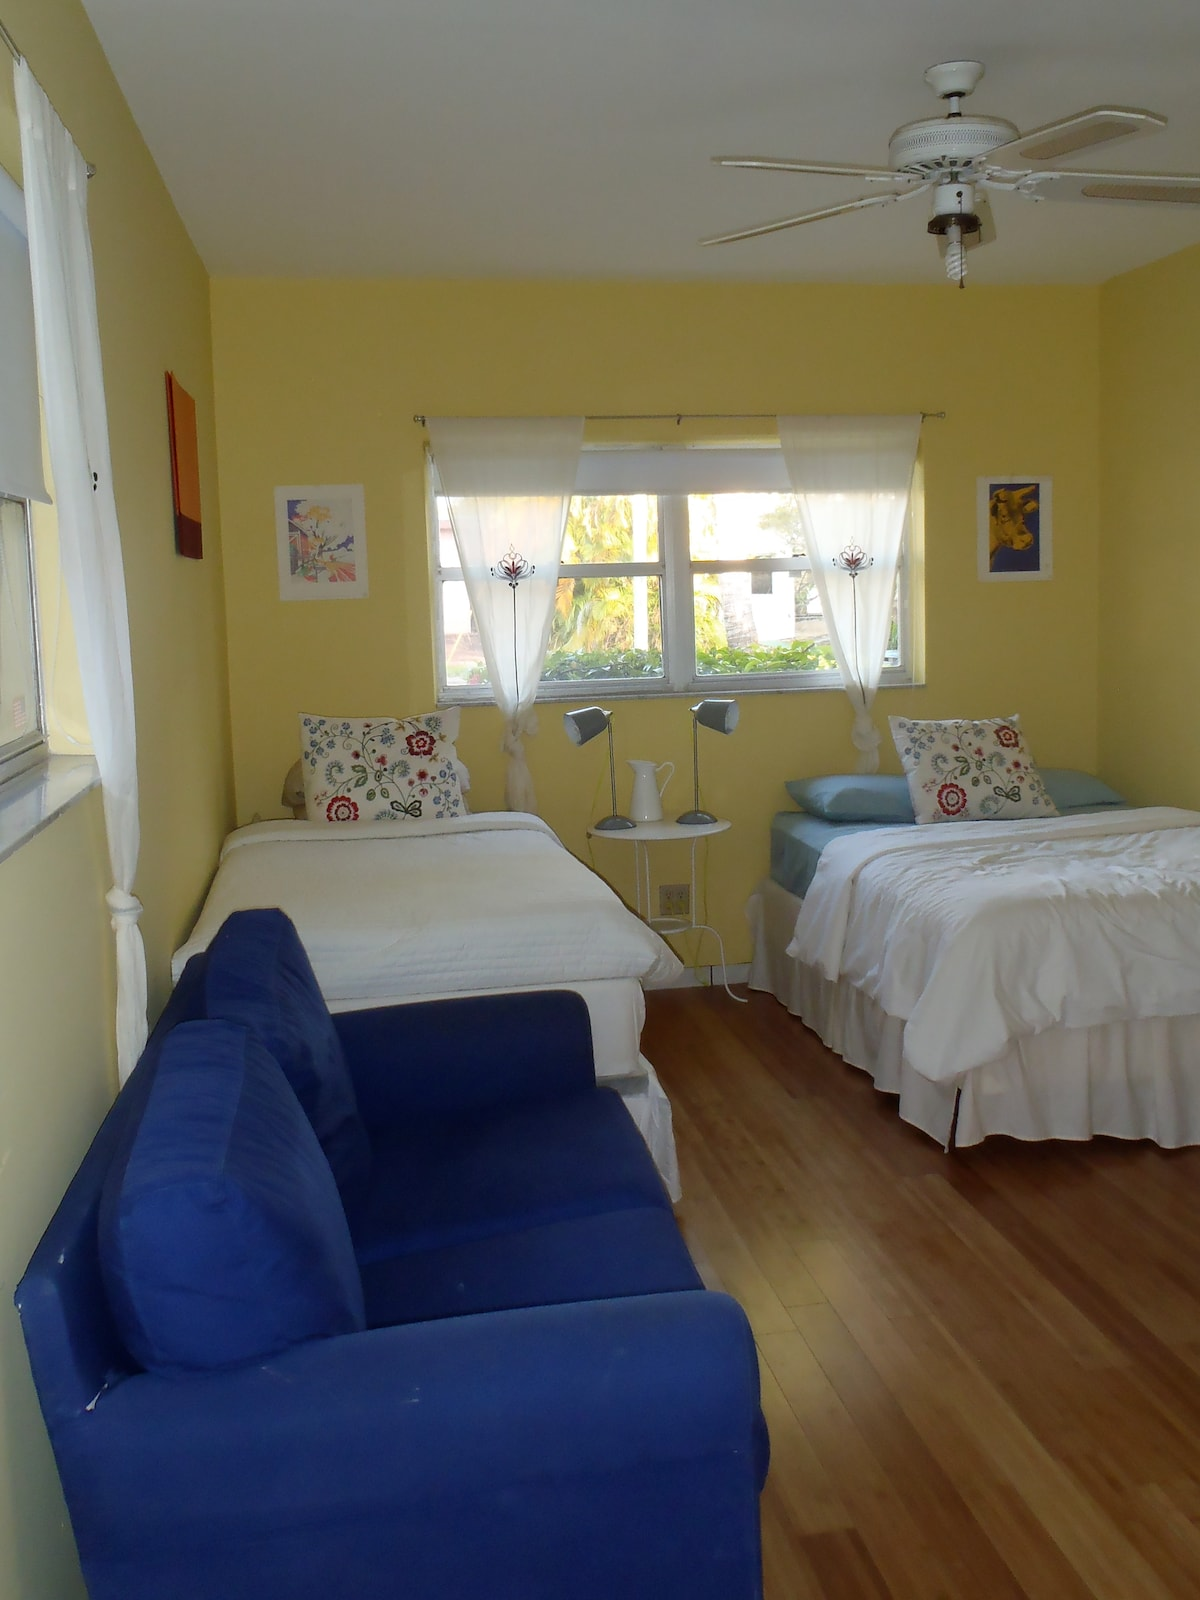 Room 3 has 1 single bed, 1 full bed and 1 sofa bed